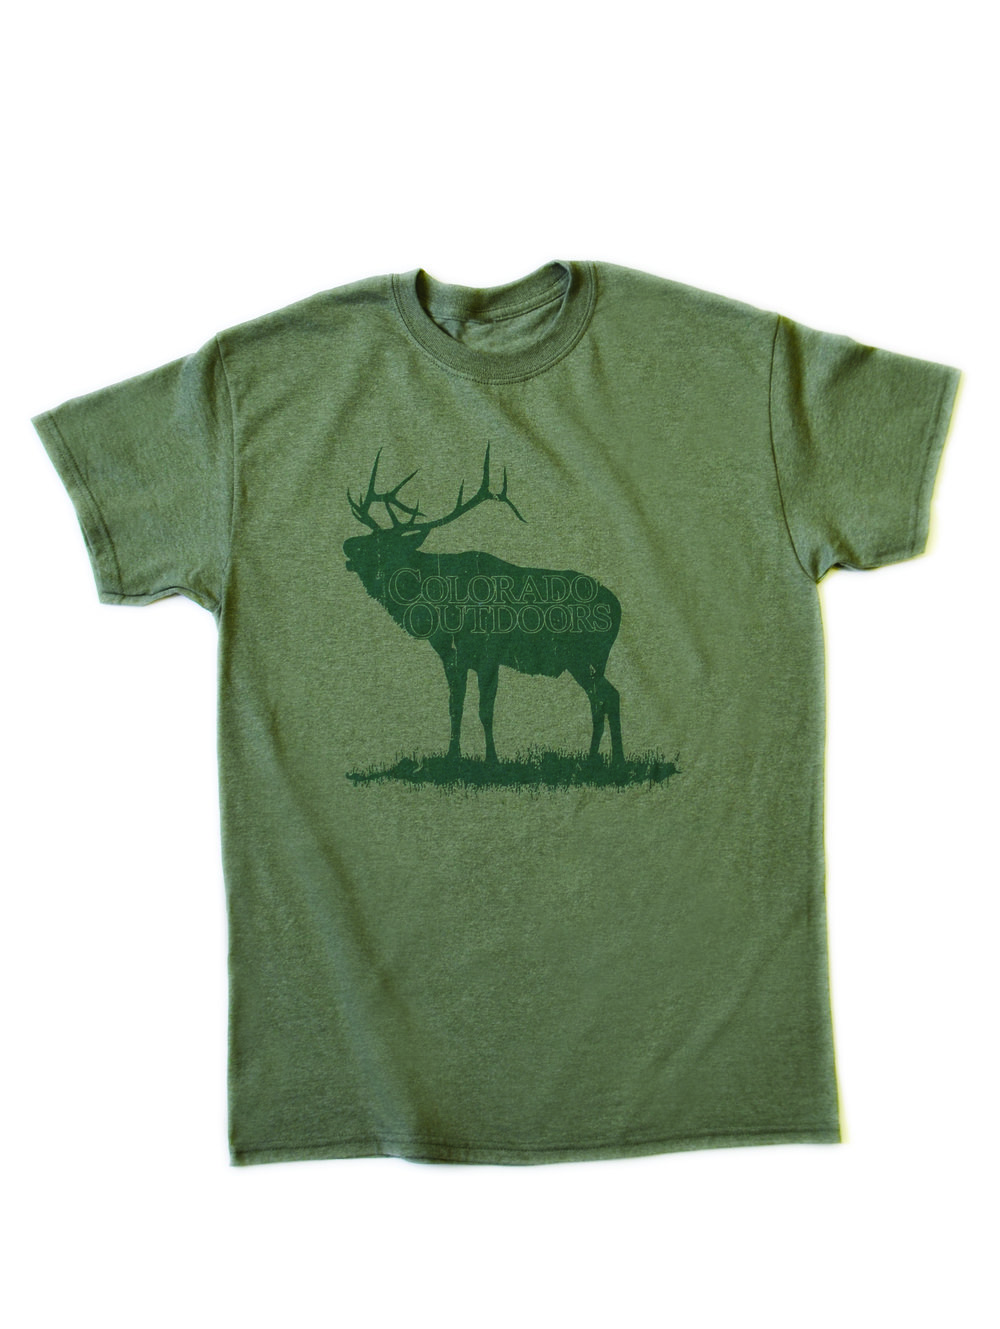 T-shirt for Colorado Outdoors magazine